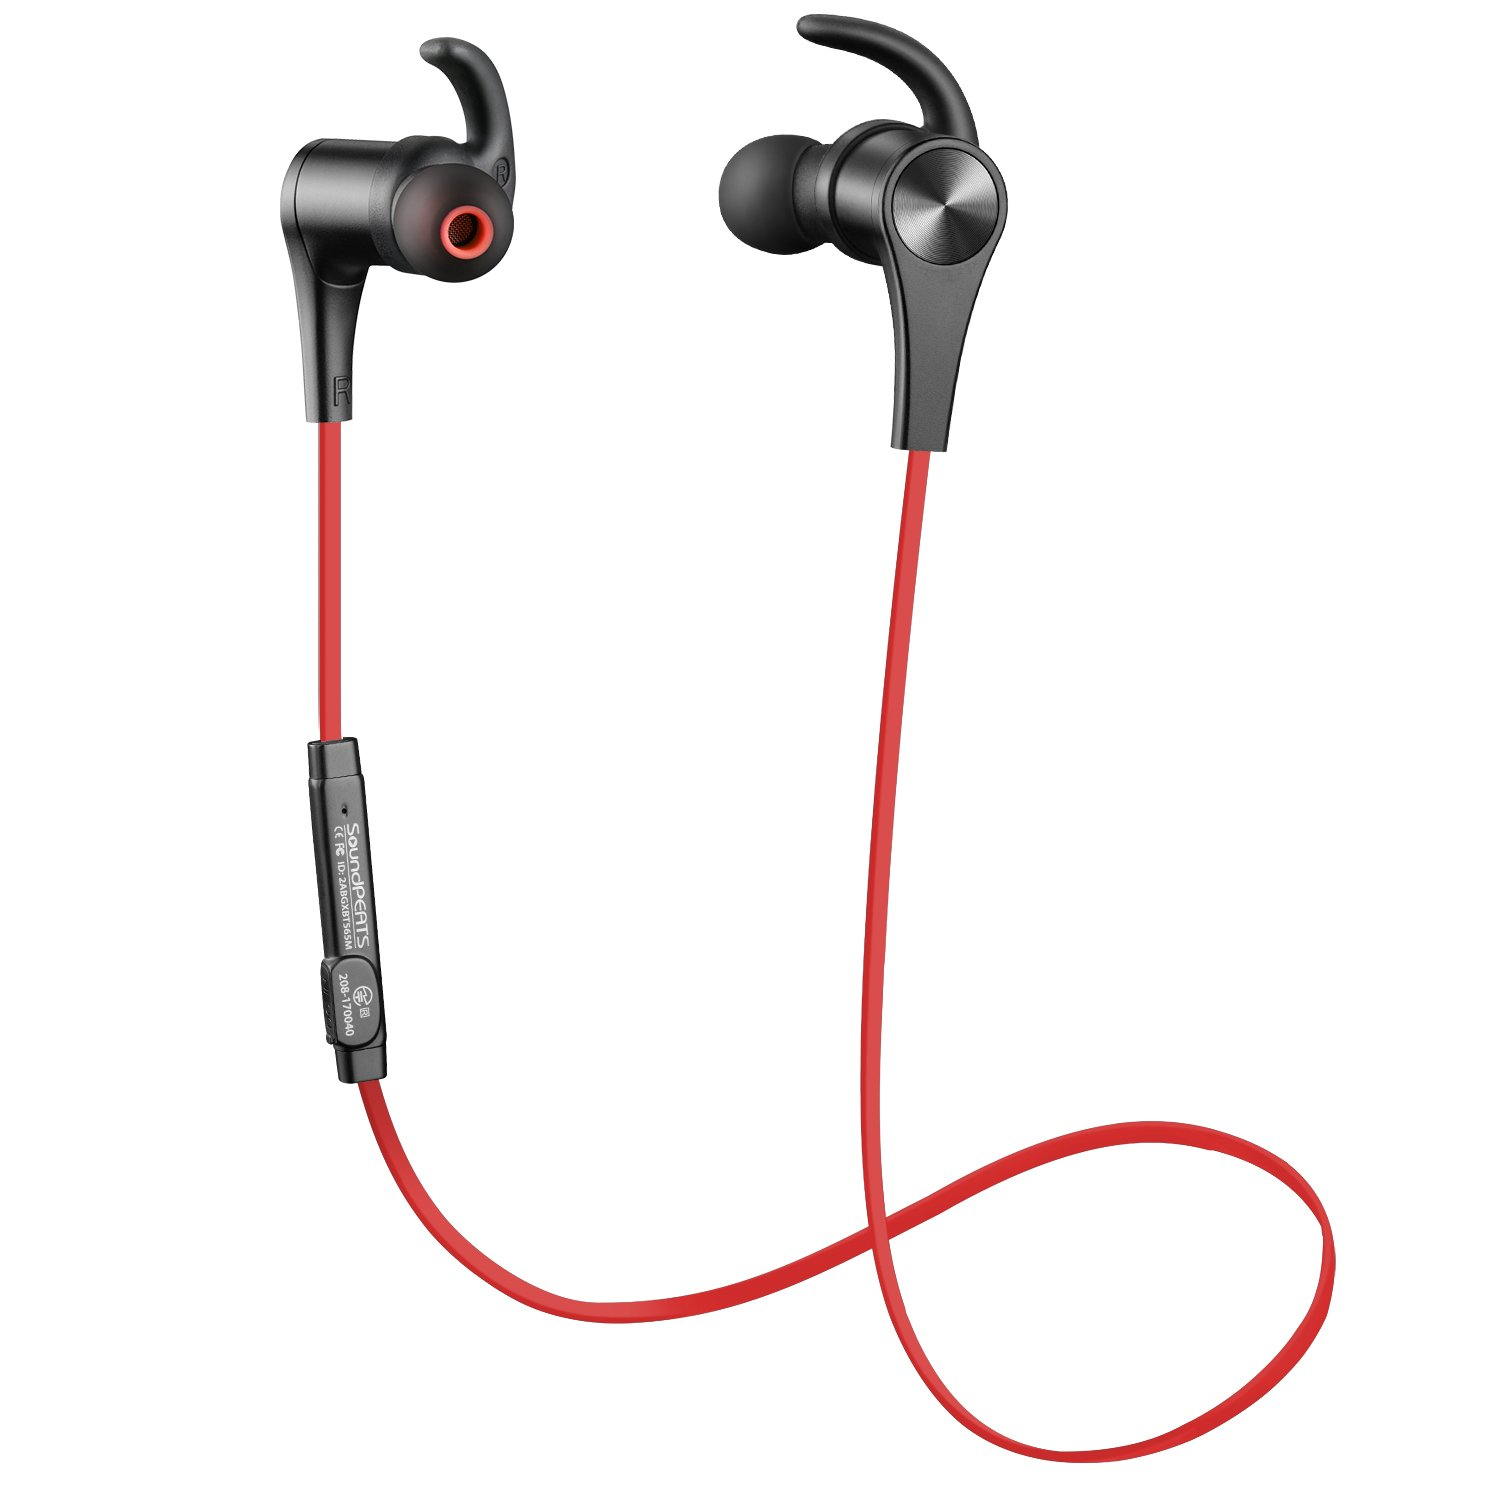 SoundPEATS Bluetooth Headphones In Ear Wireless Earbuds 4.1 Magnetic Sweatproof Stereo Bluetooth Earphones for Sports With Mic (Upgraded 7 Hours Play Time, Secure Fit, Noise Cancelling) - Red